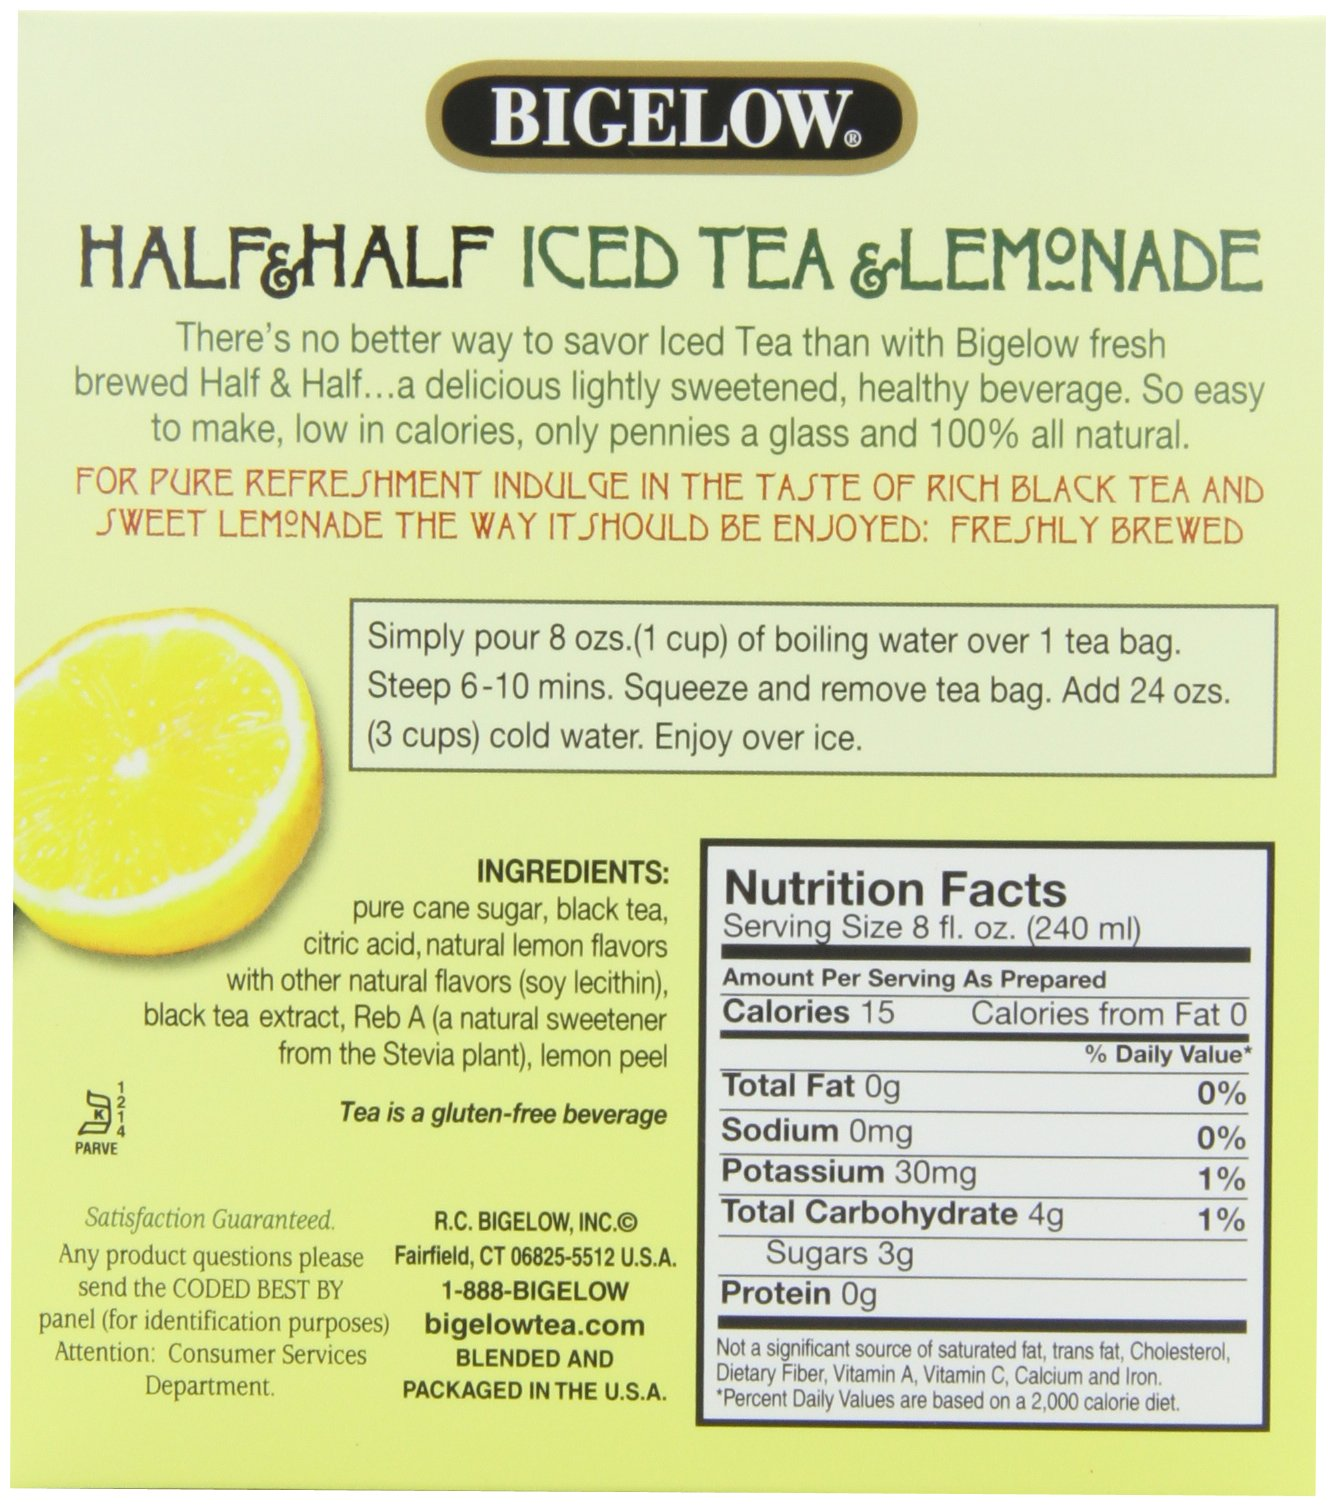 Bigelow Tea Half and Half Iced Tea and Lemonade 6-Count (Pack of 6), 36 Tea Bags Total.  Black Tea Bags for Brewing Iced Tea, Each Bag Brews One Quart of Delicious Iced Tea